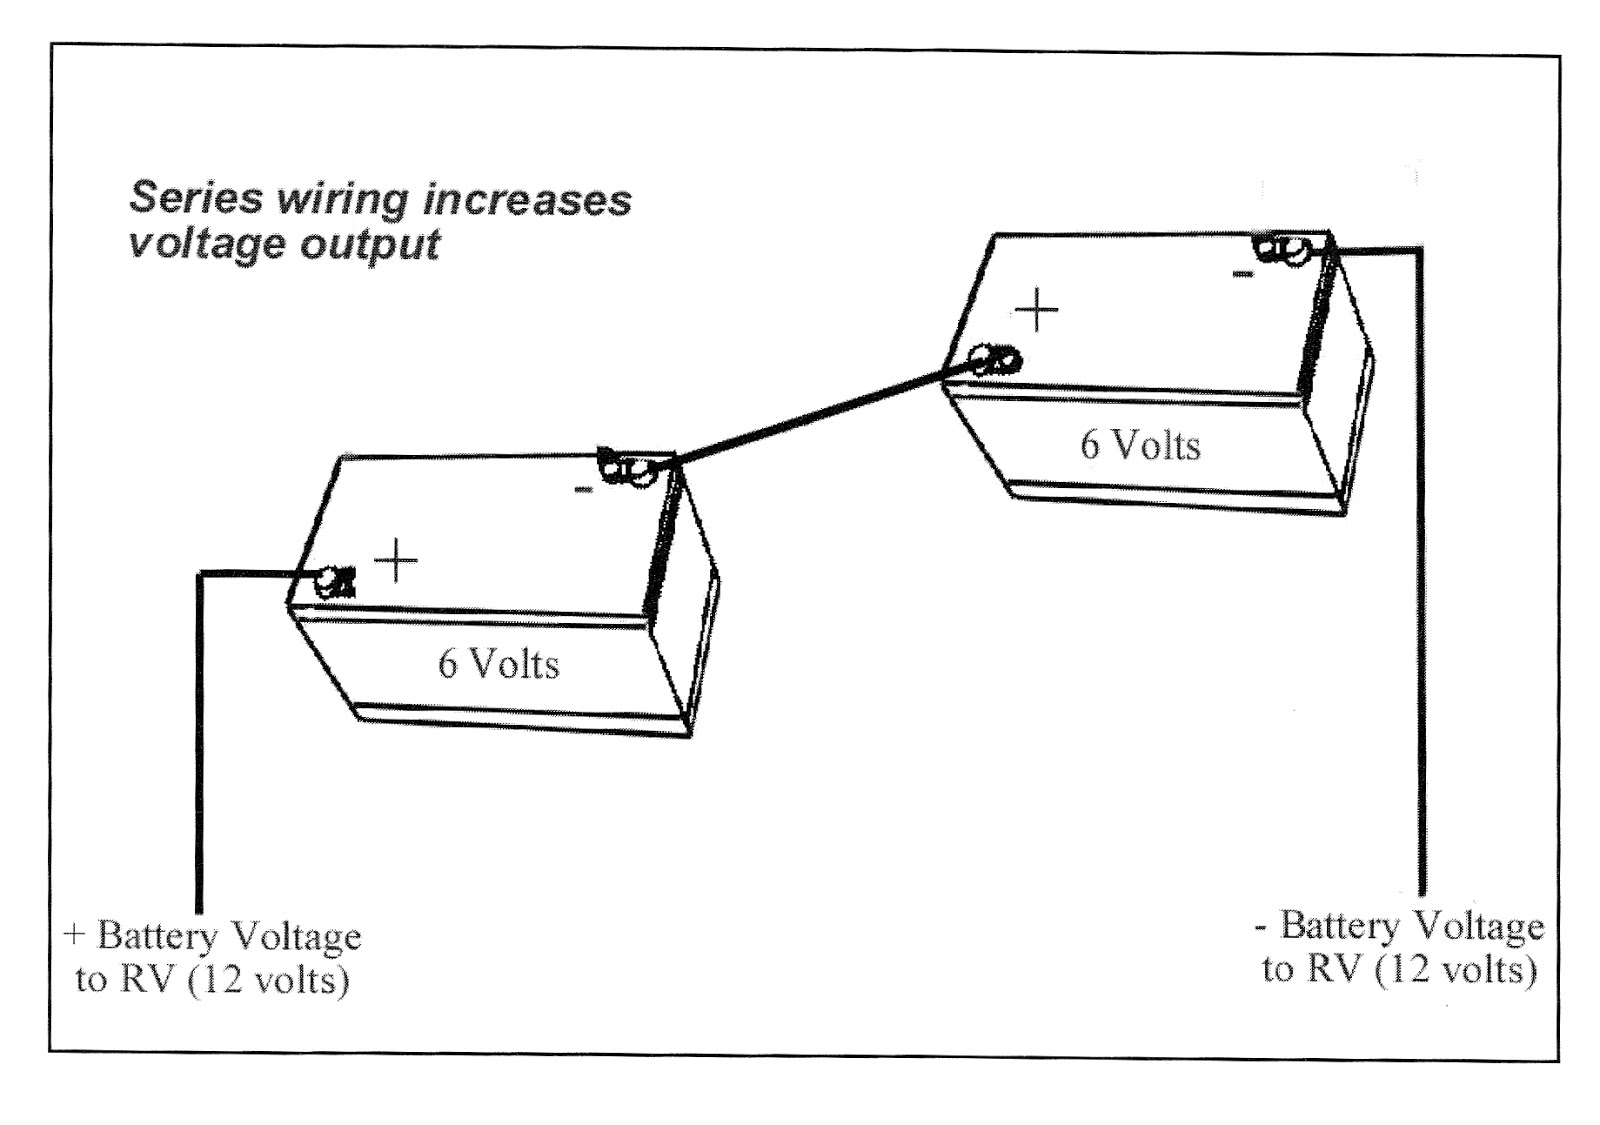 battery+series+wiring+diagram penny's tuppence (2 cents in brit) november 2012 Light Switch Wiring Diagram at mr168.co